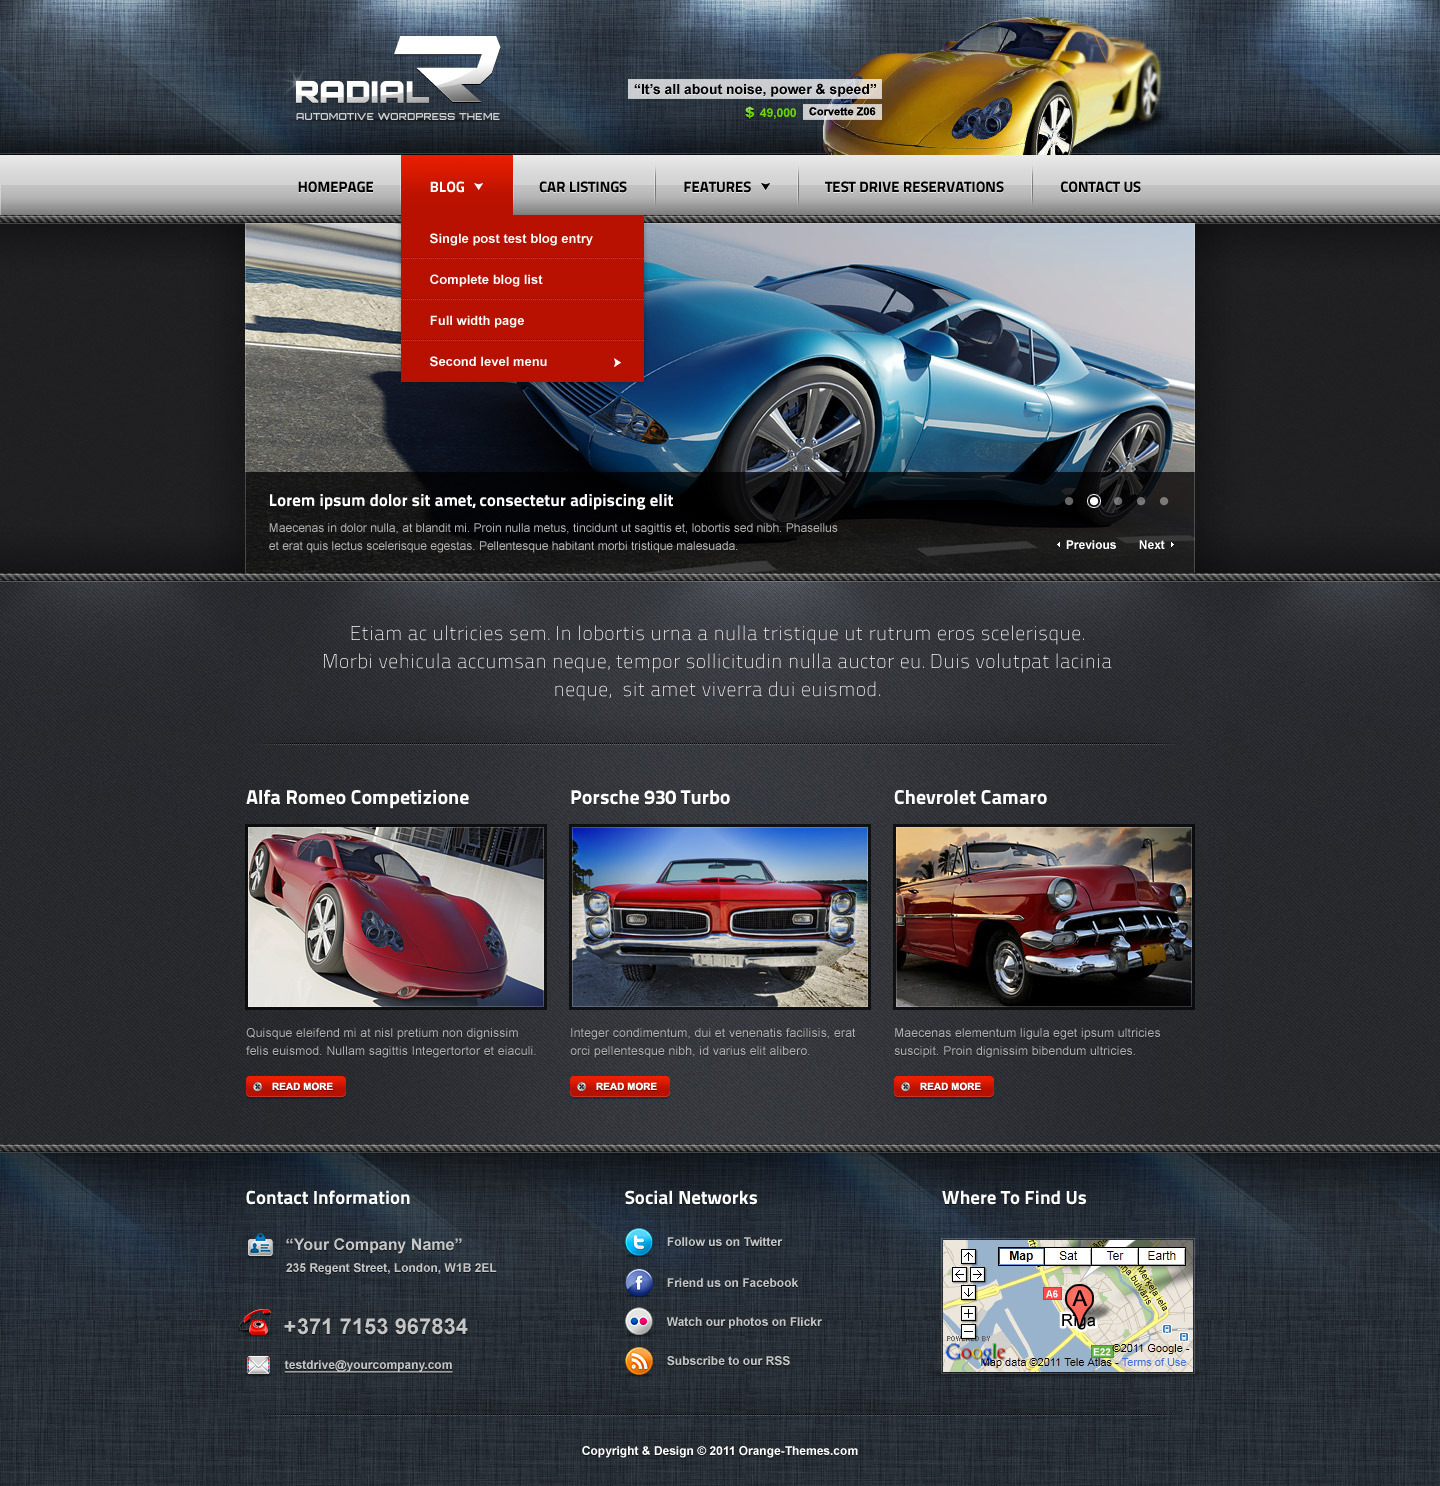 Radial - Premium Automotive & Tech HTML Template